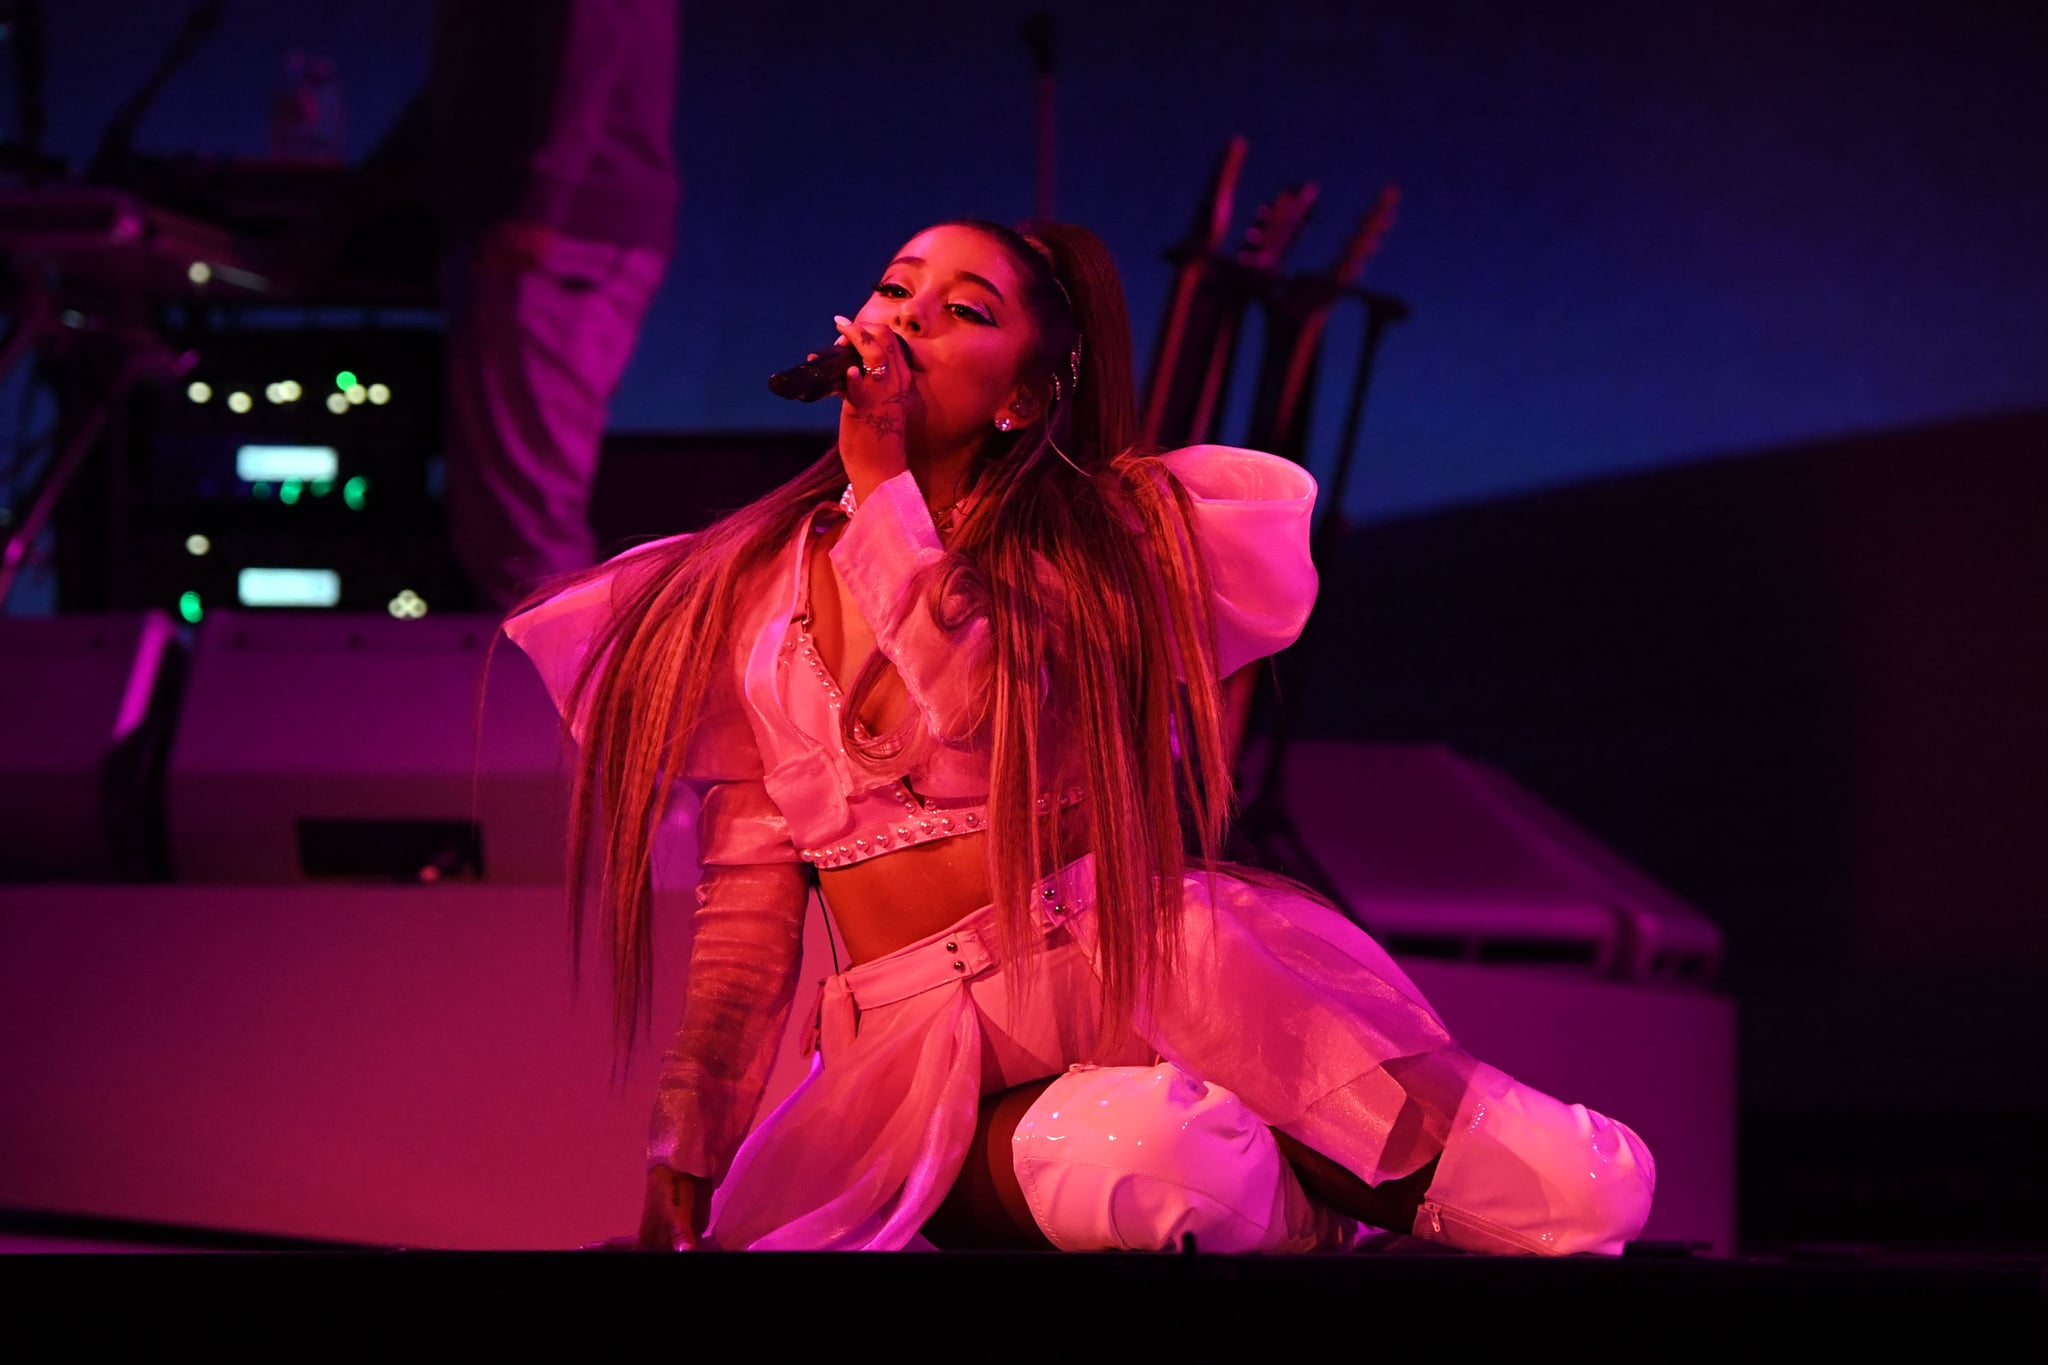 ALBANY, NEW YORK - MARCH 18: Ariana Grande performs onstage during the Sweetener World Tour - Opening Night at Times Union Centre on March 18, 2019 in Albany, New York. (Photo by Kevin Mazur/Getty Images for Ariana Grande)